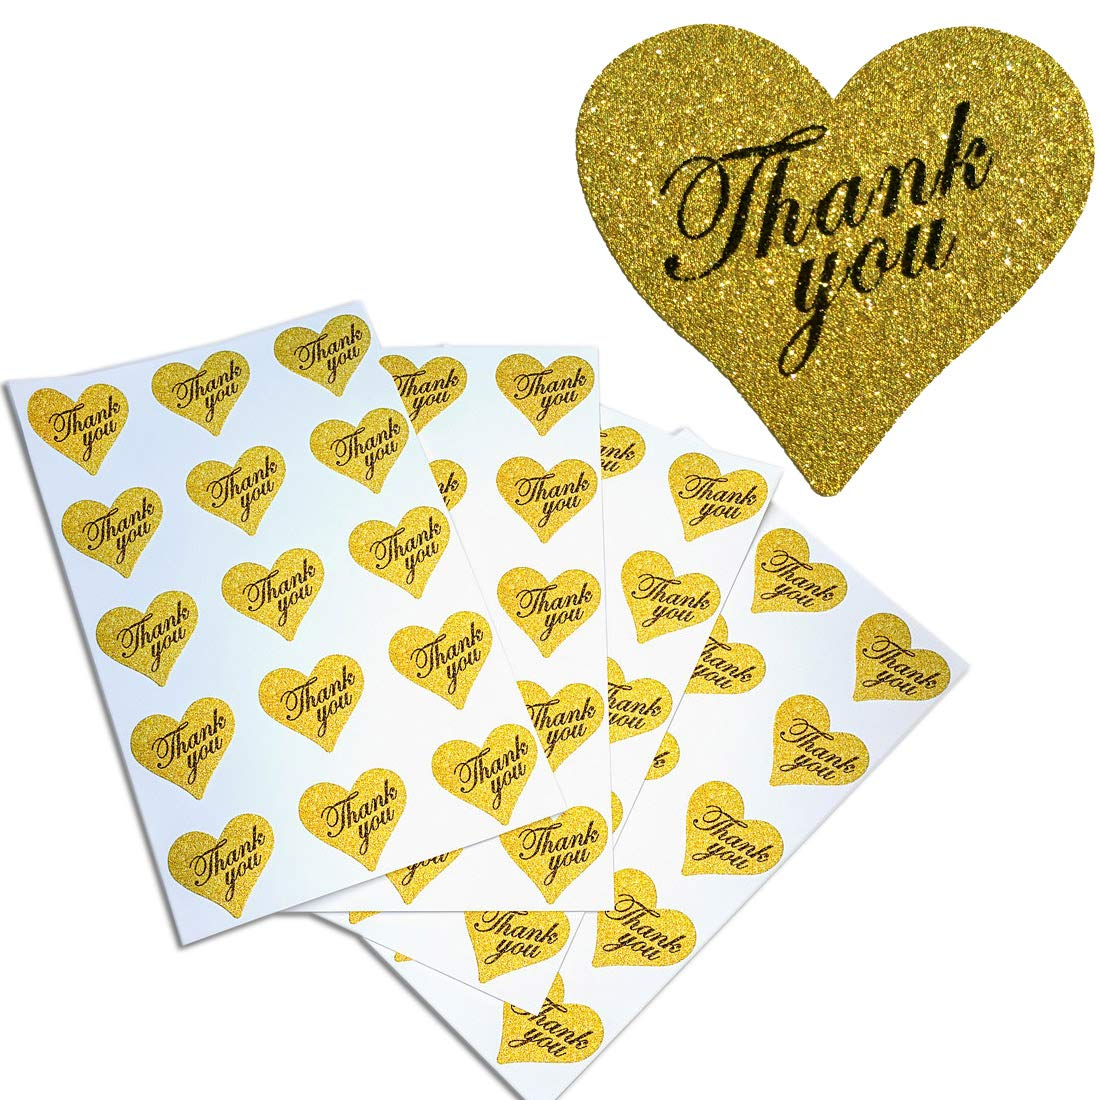 Royal Green Heart Stickers Thank You in Gold Glitter – Heart Shaped Labels 1.5 x1.75 inches – 150 Pack